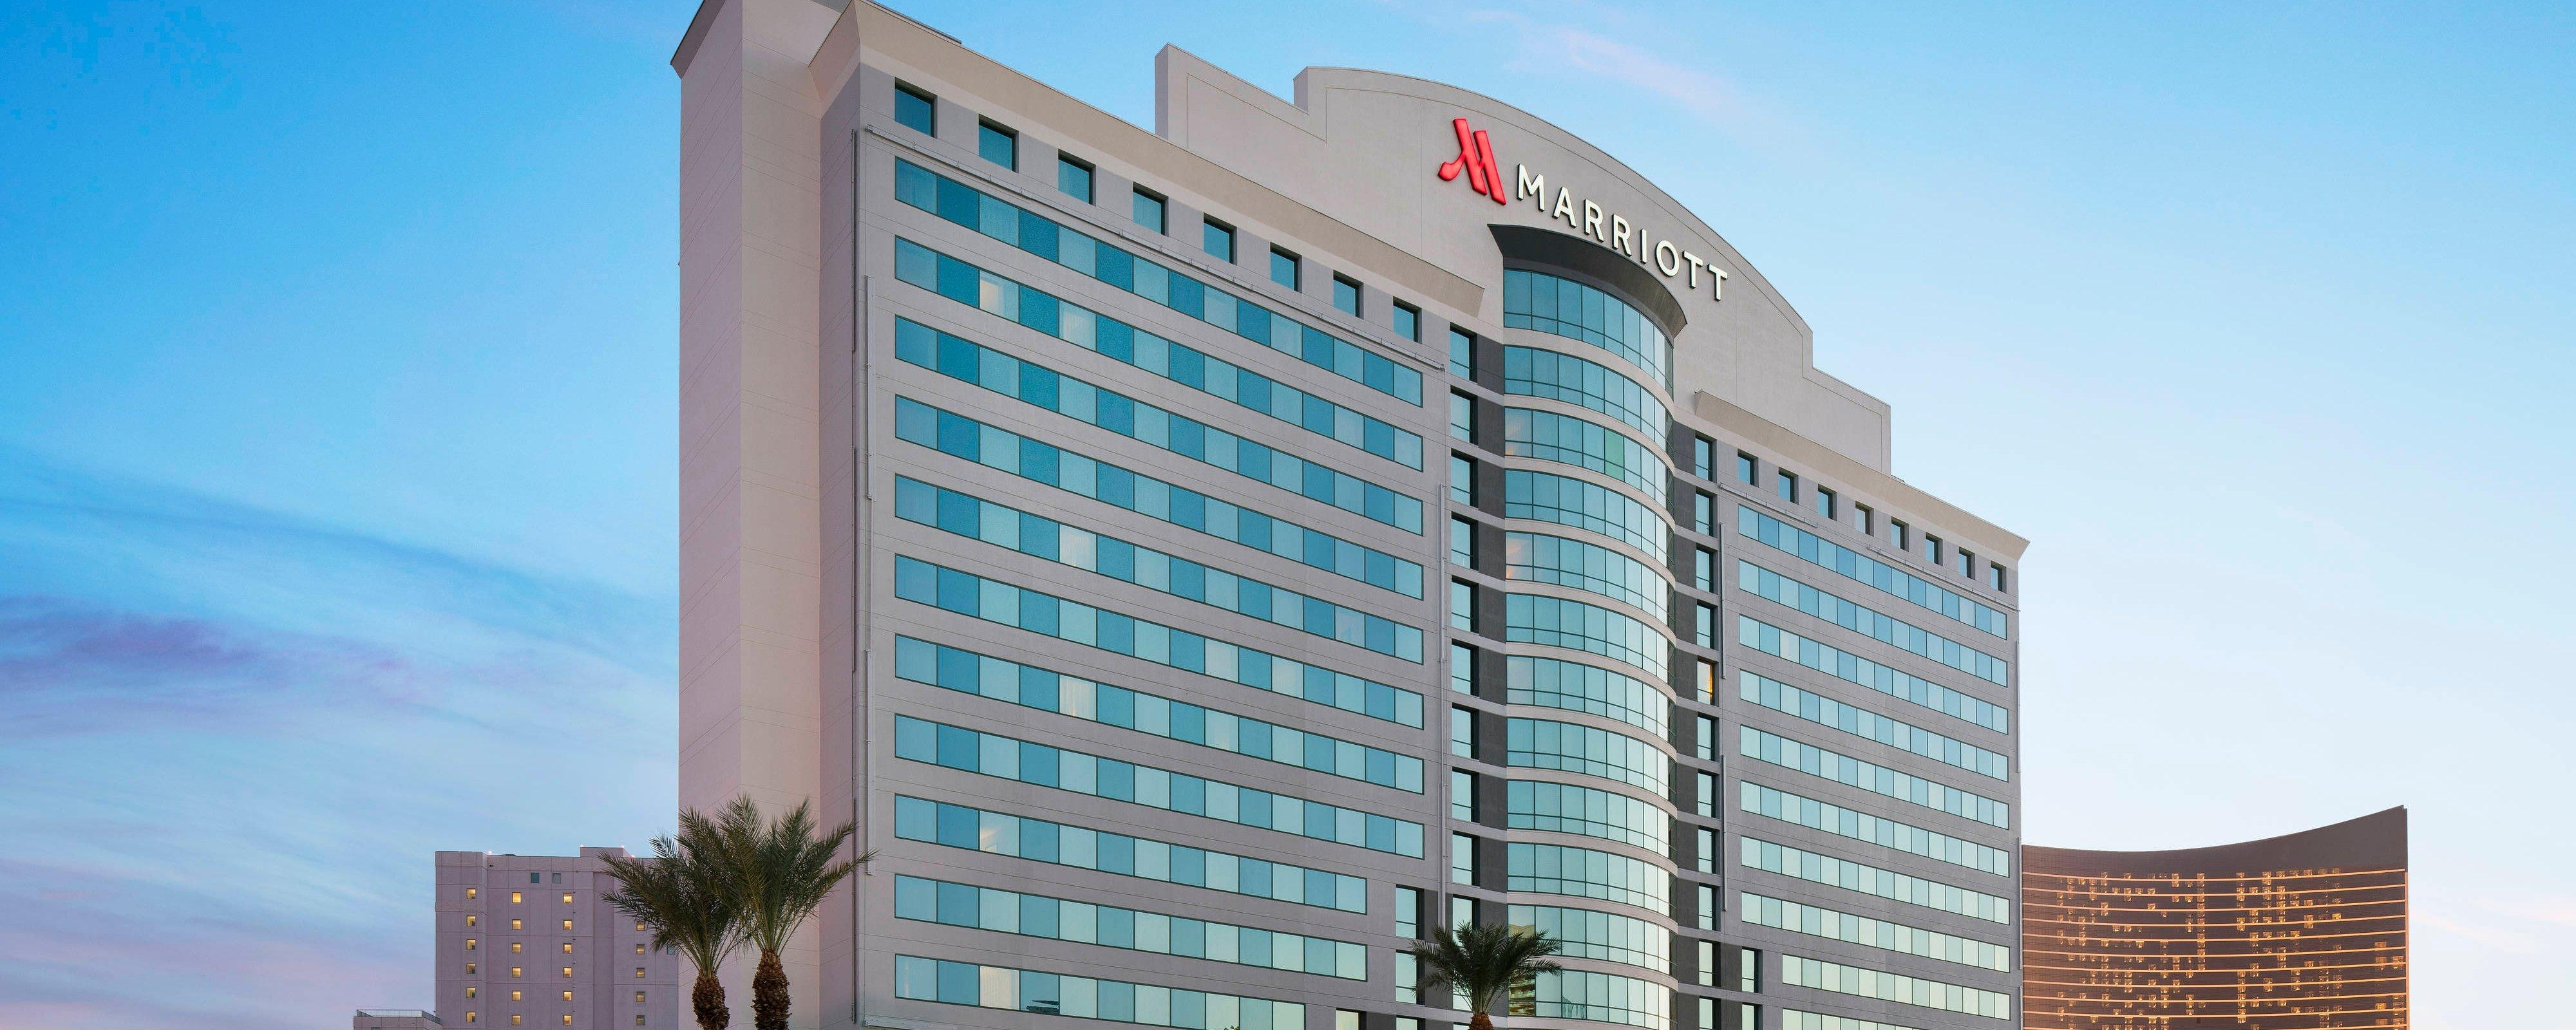 Jw Marriott Las Vegas Map.Hotel Near The Las Vegas Convention Center Las Vegas Marriott